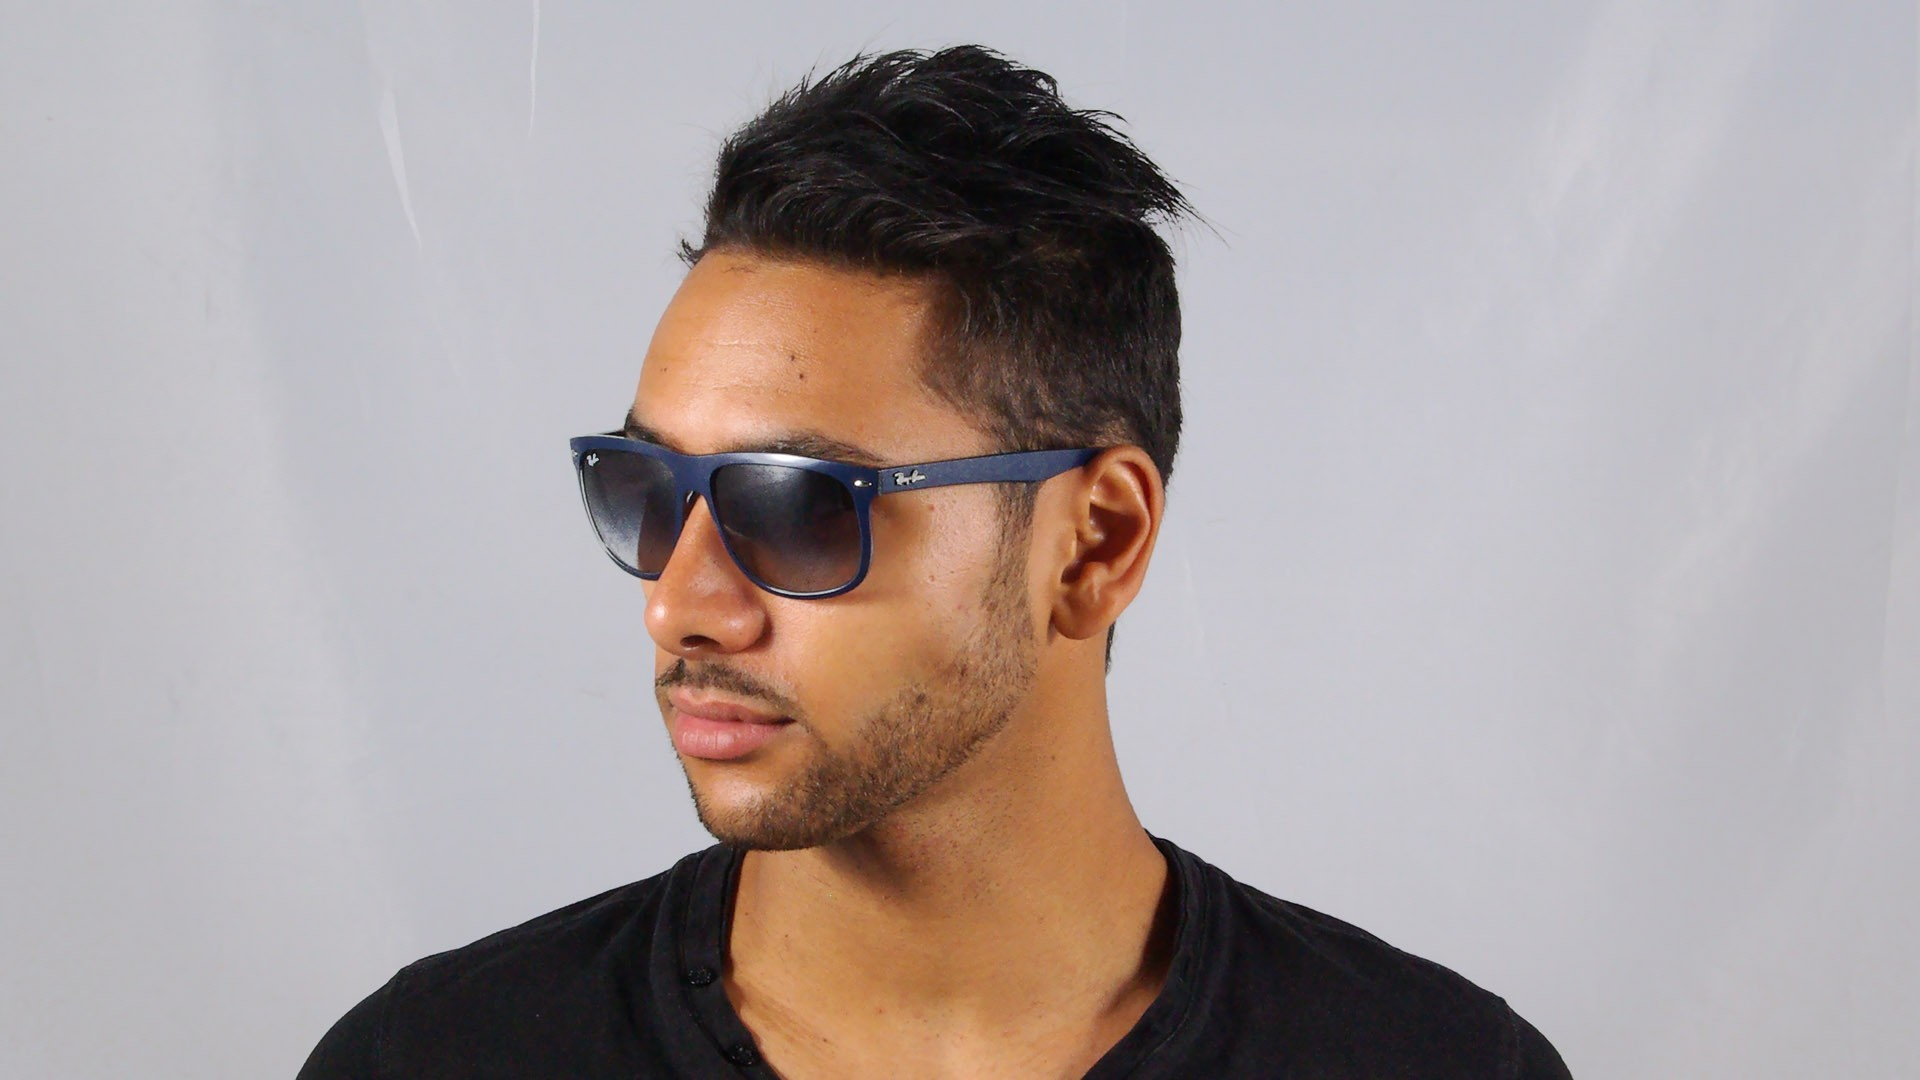 Ray-Ban RB4147 617187 56-15 prGv5iS